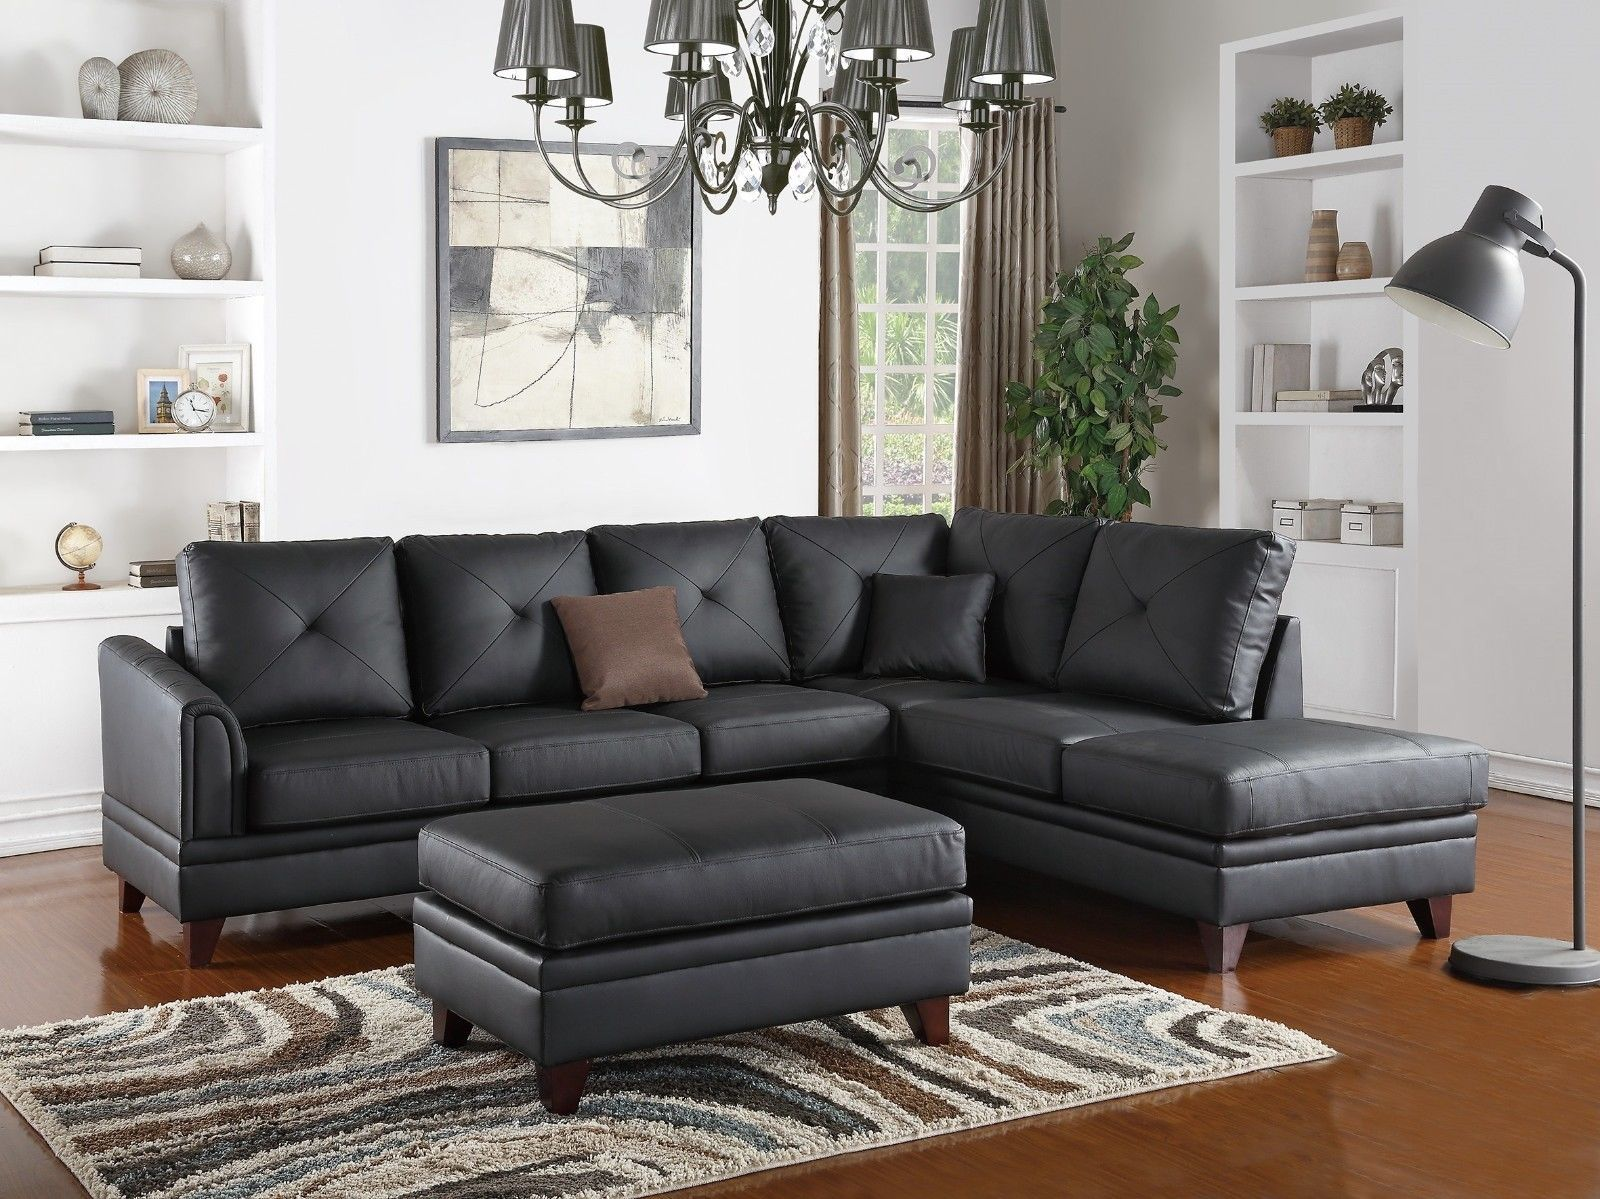 Black sectional sofa 2p set reversible chaise sofa top for Sectional sofa reversible chaise living room furniture